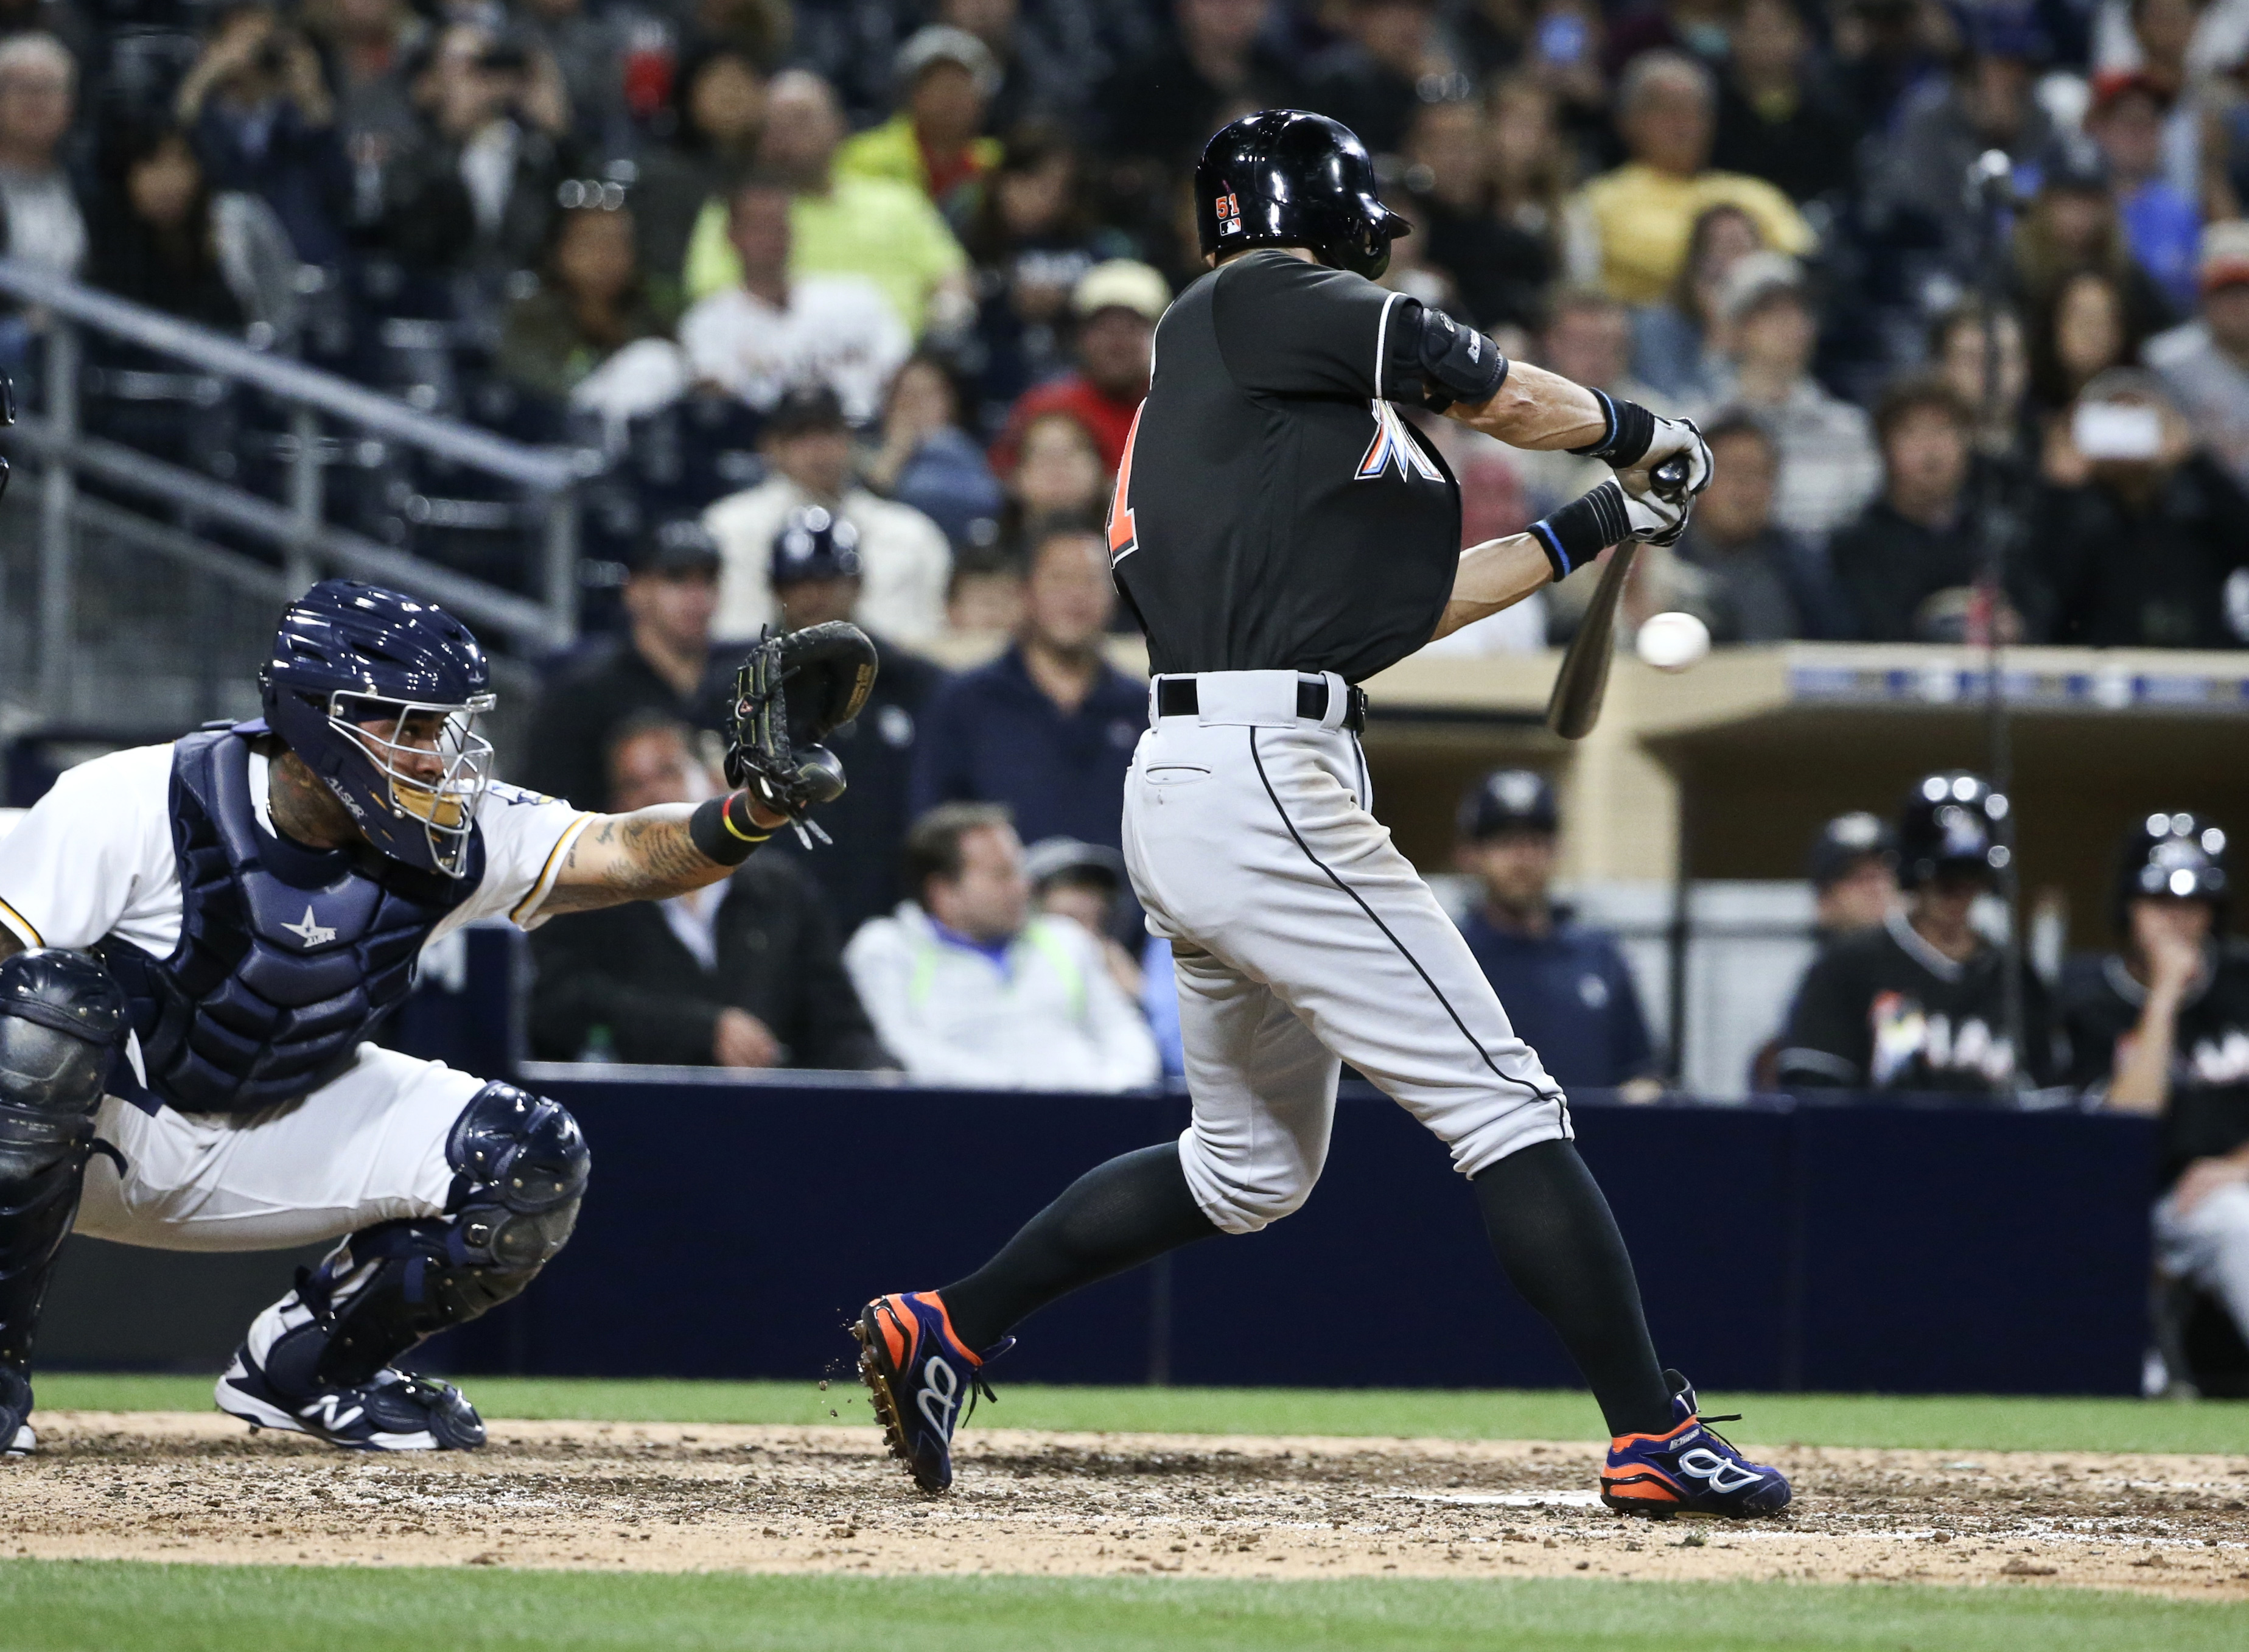 Miami Marlins' Ichiro Suzuki connects on his third hit of the night against the San Diego Padres, in the eighth inning of a baseball game Monday, June 13, 2016, in San Diego. (AP Photo/Lenny Ignelzi)